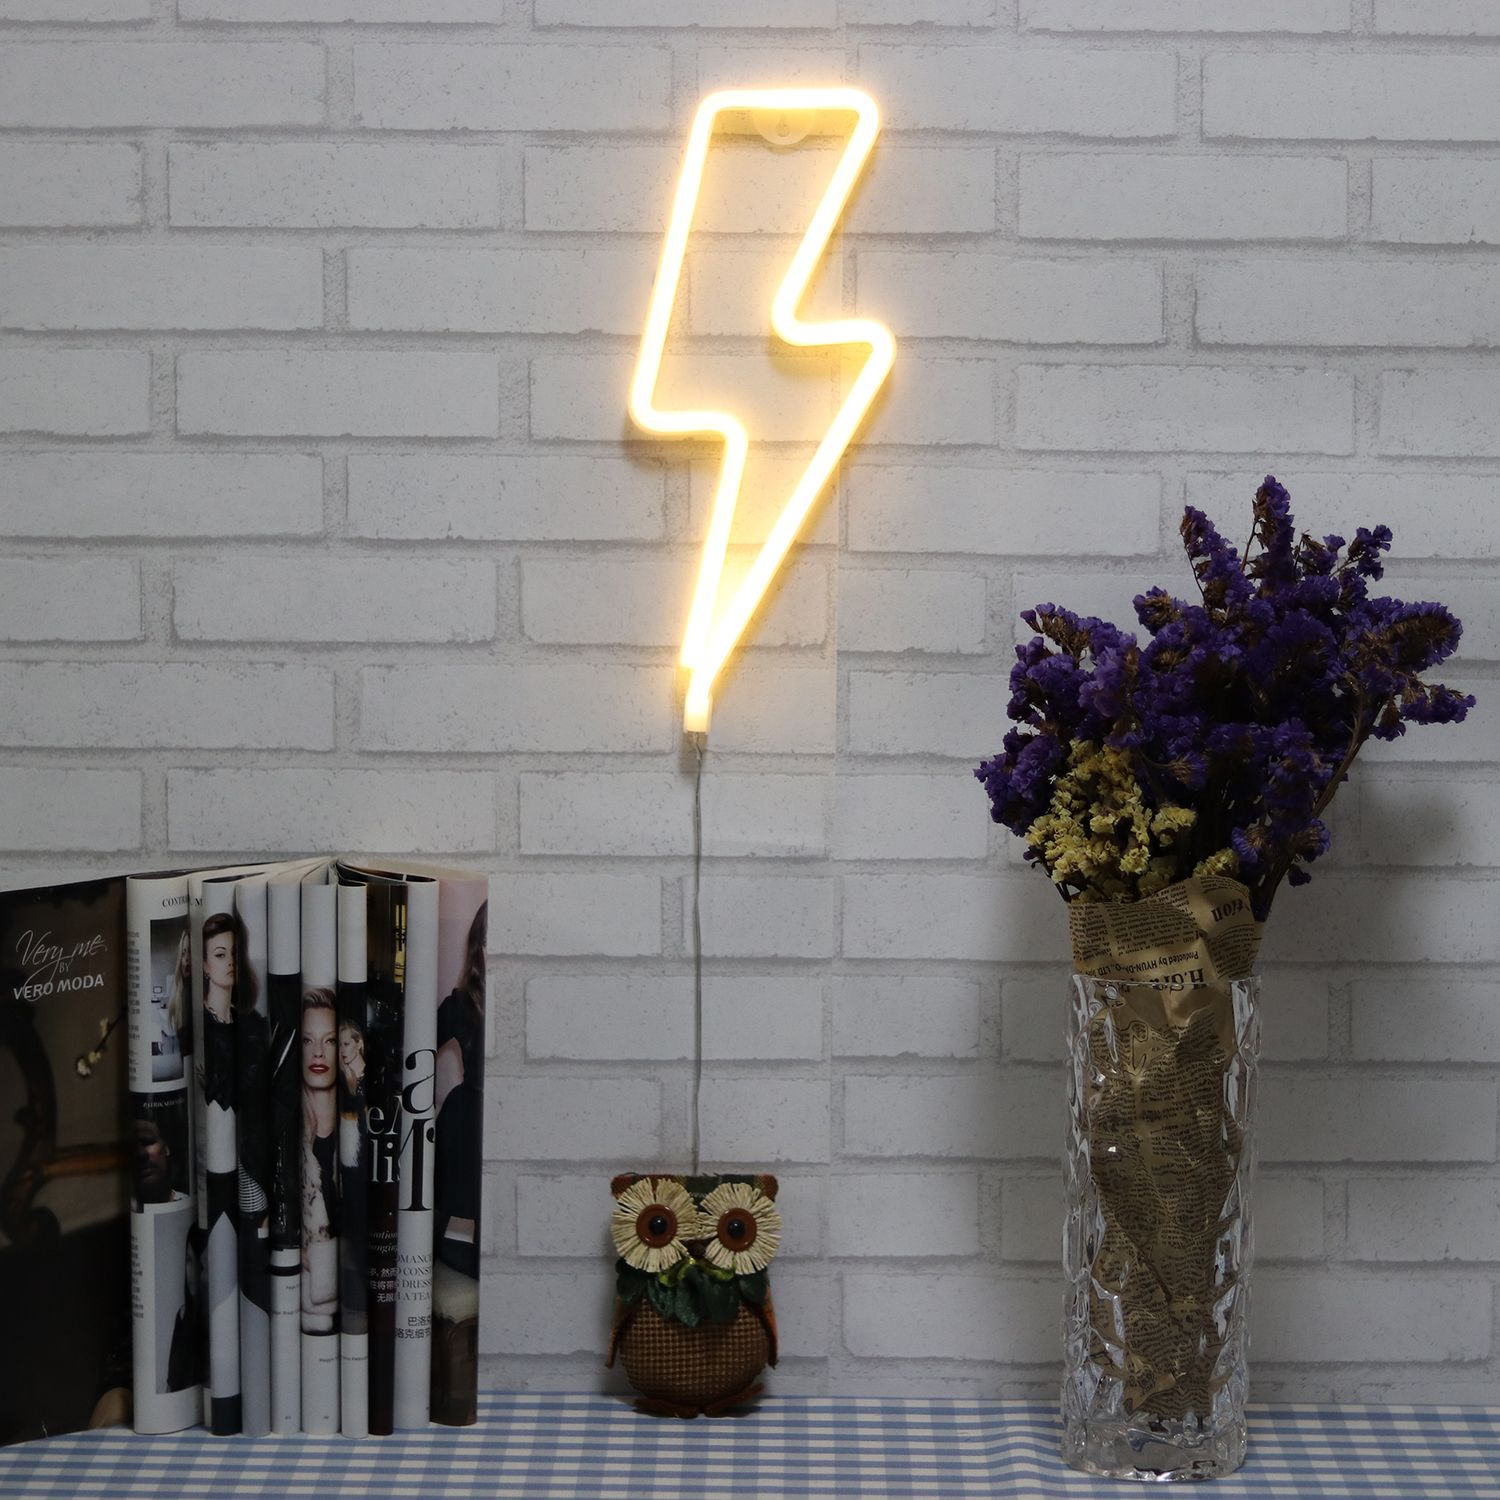 Neon Signs Lightning Bolt Battery Operated And Usb Ed Warm White Art Led Decorative Lights Wall Decor For Living Room Office Christmas Wedding Party